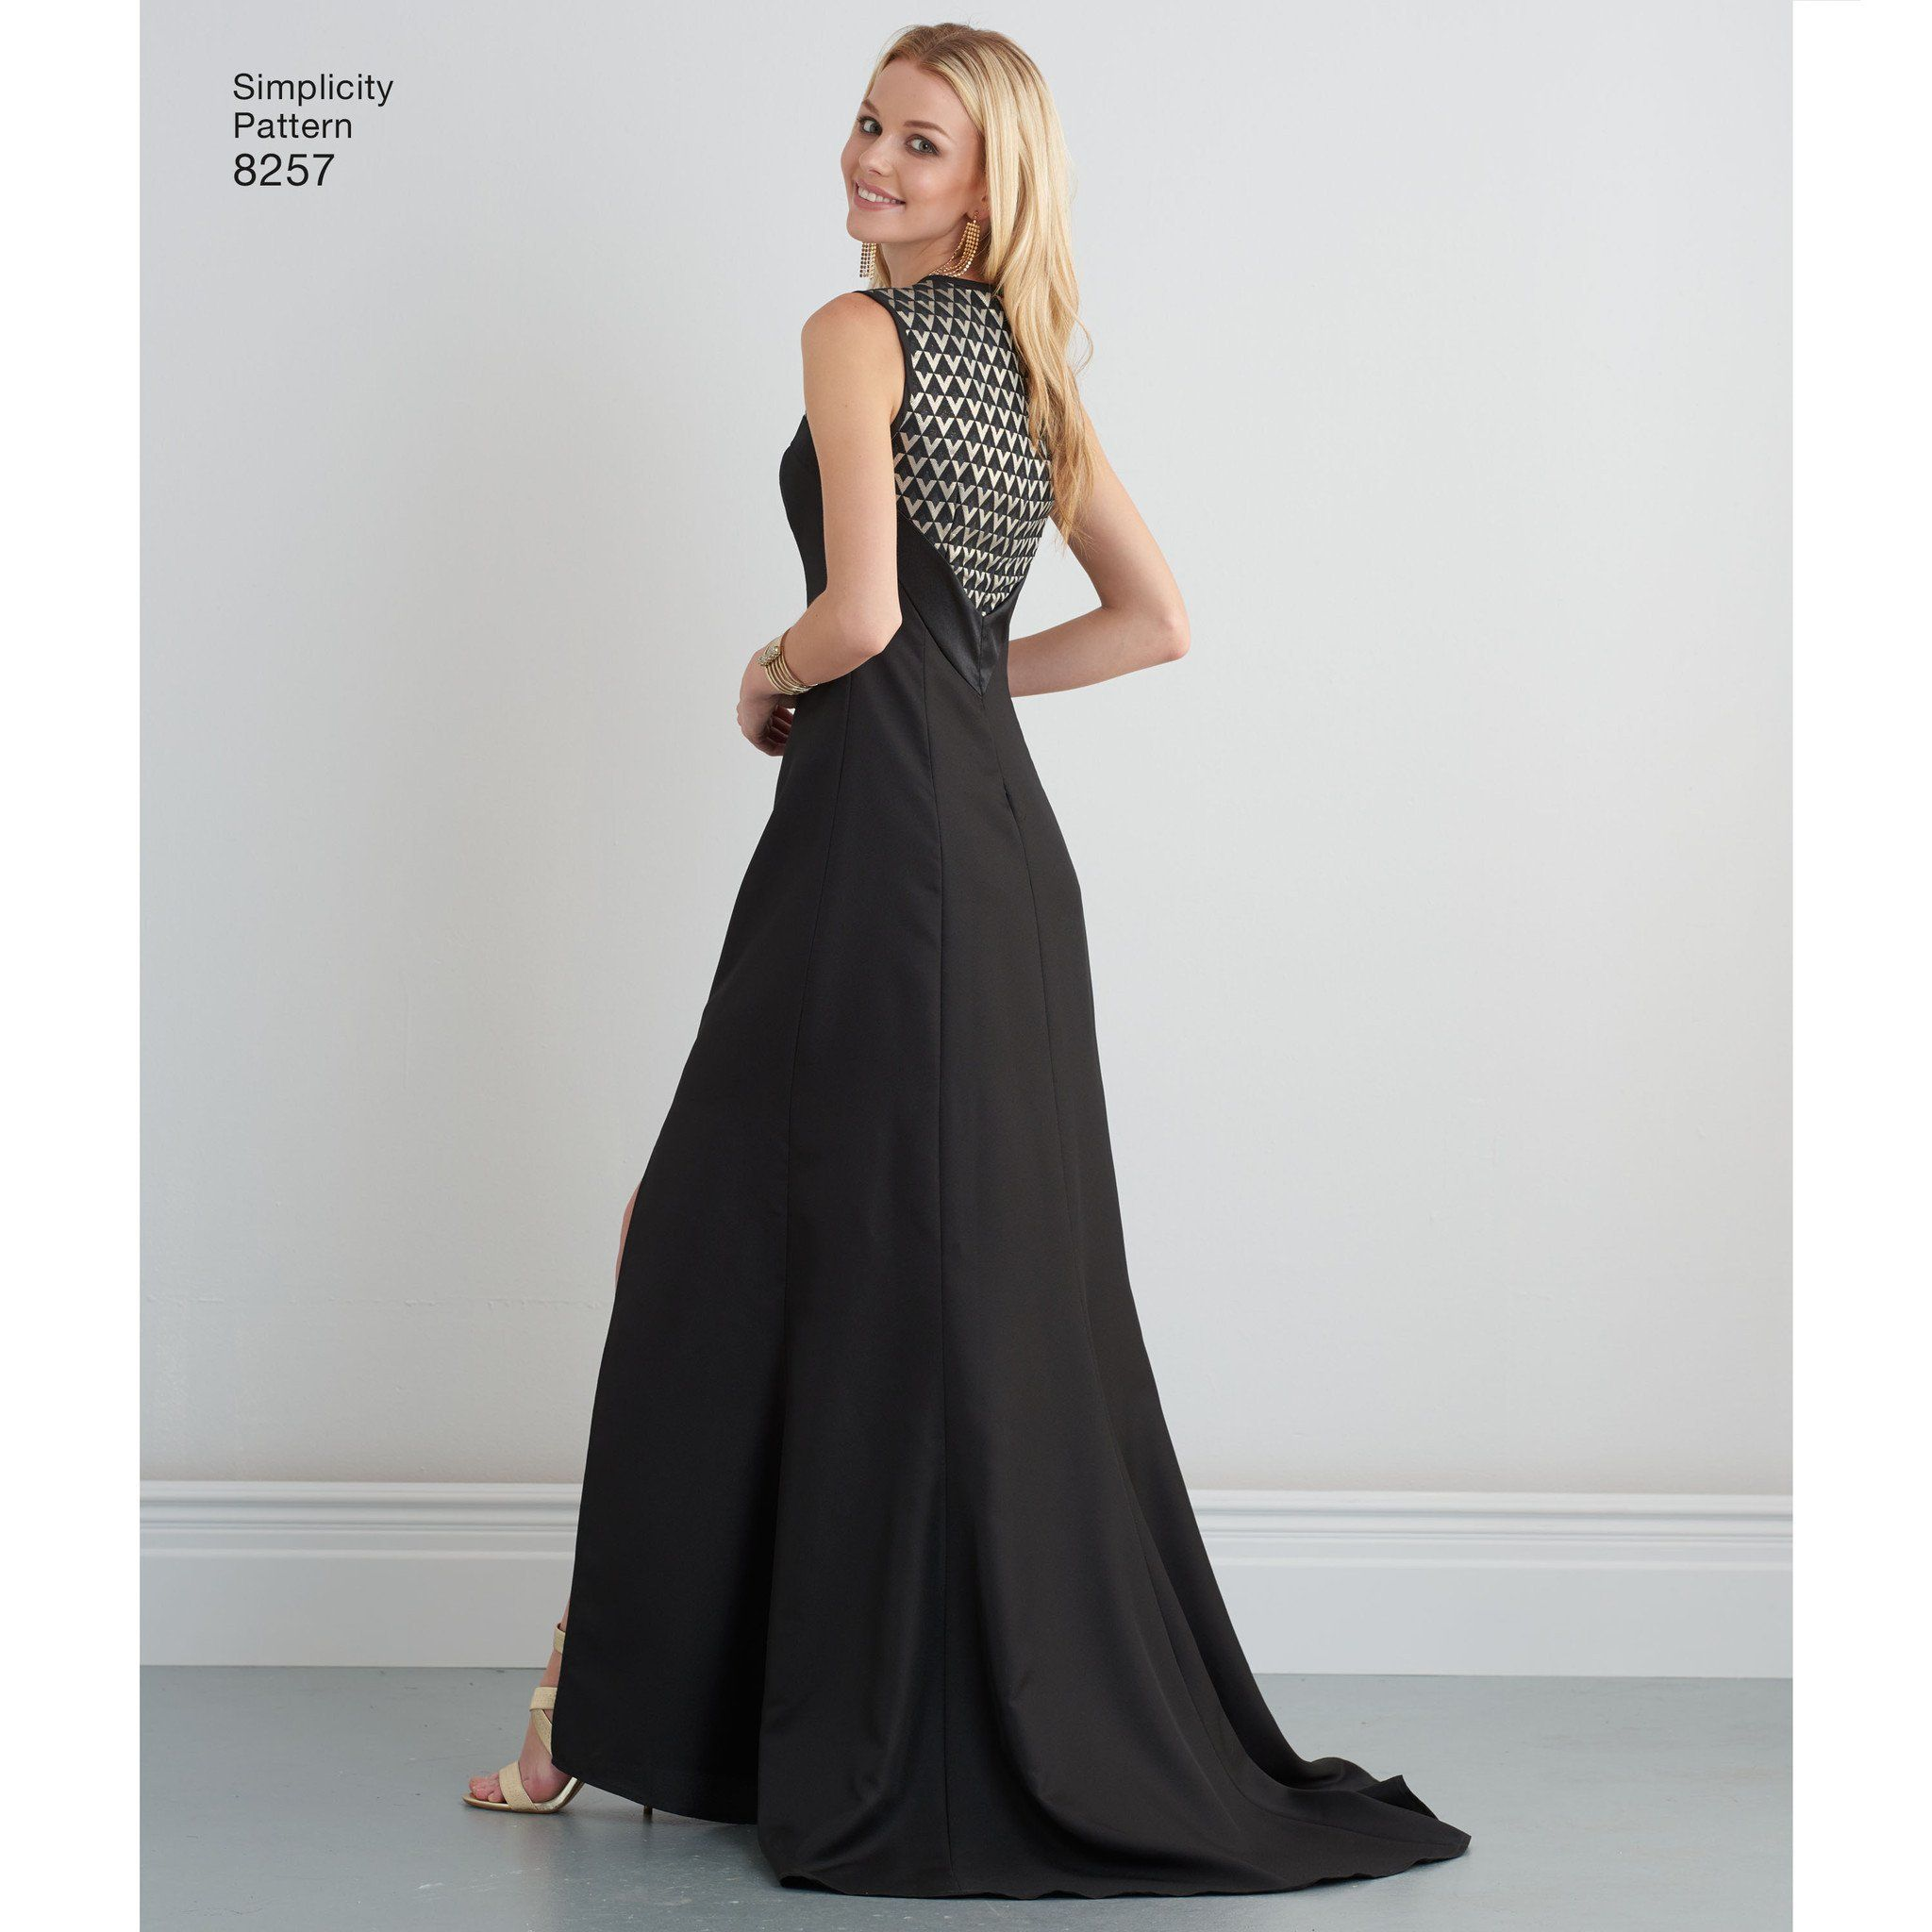 S8257 Misses\' Special Occasion Dresses and gown Simplicity Pattern ...